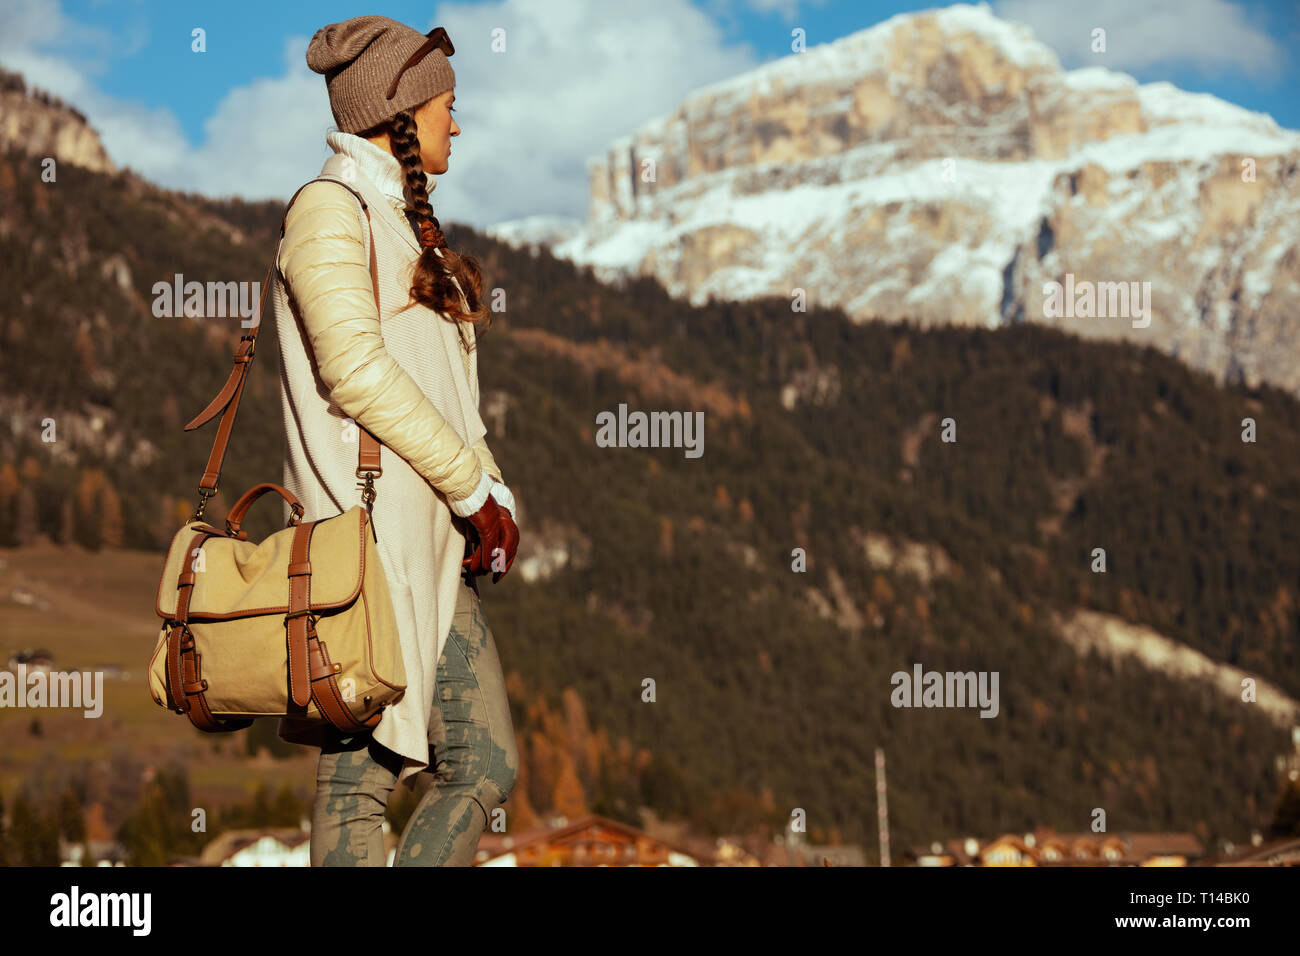 relaxed fit woman hiker in hiking gear with bag in Alto Adige, Italy. - Stock Image